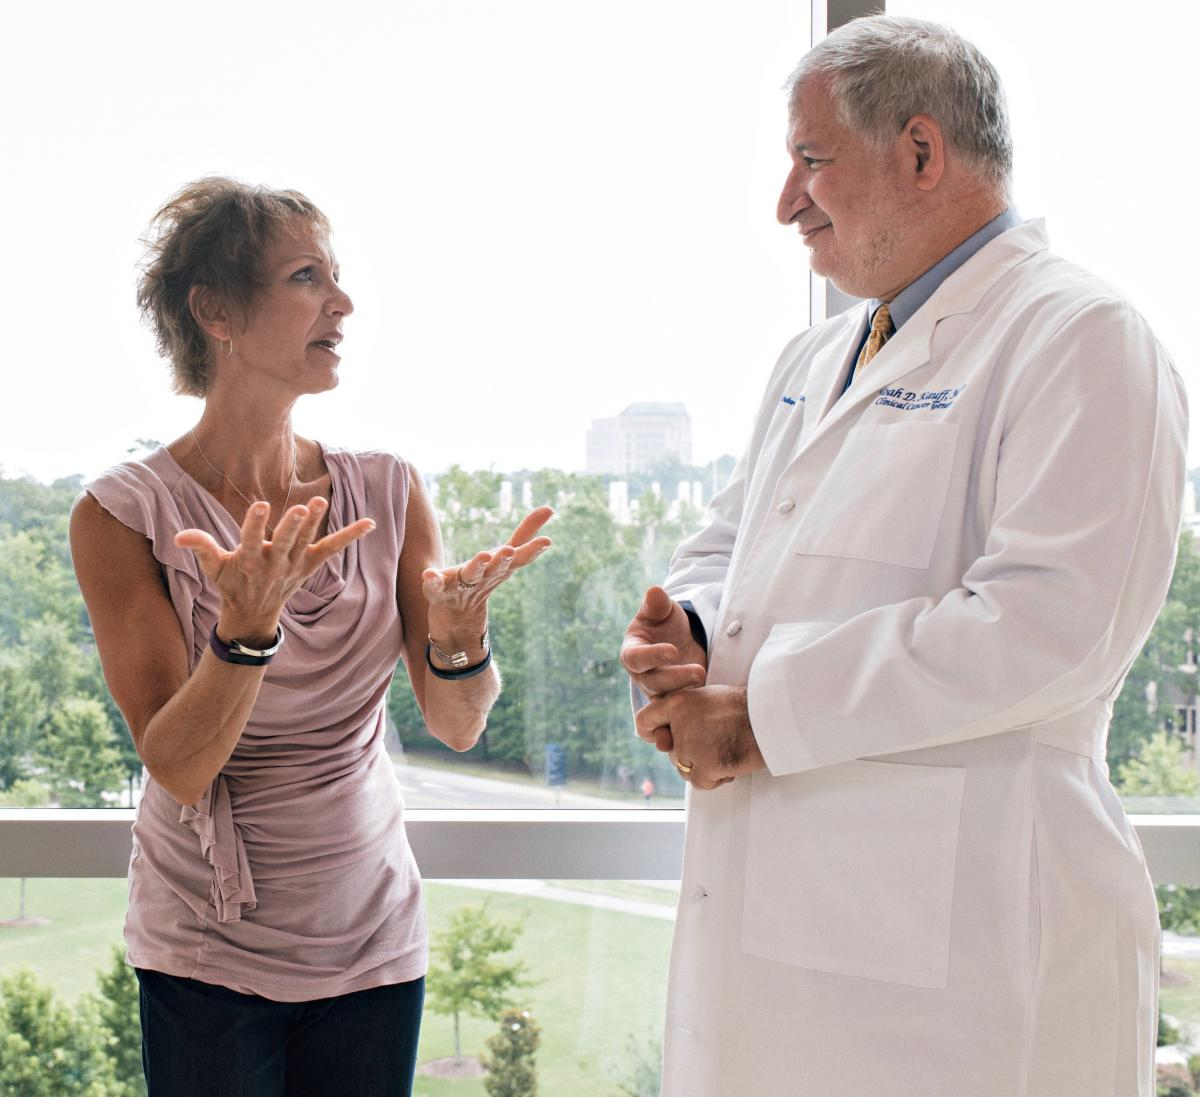 TWO-TIME BREAST CANCER SURVIVOR: Kate Houff with clinical cancer geneticist Noah Kauff, MD (photo by Alex Boerner)